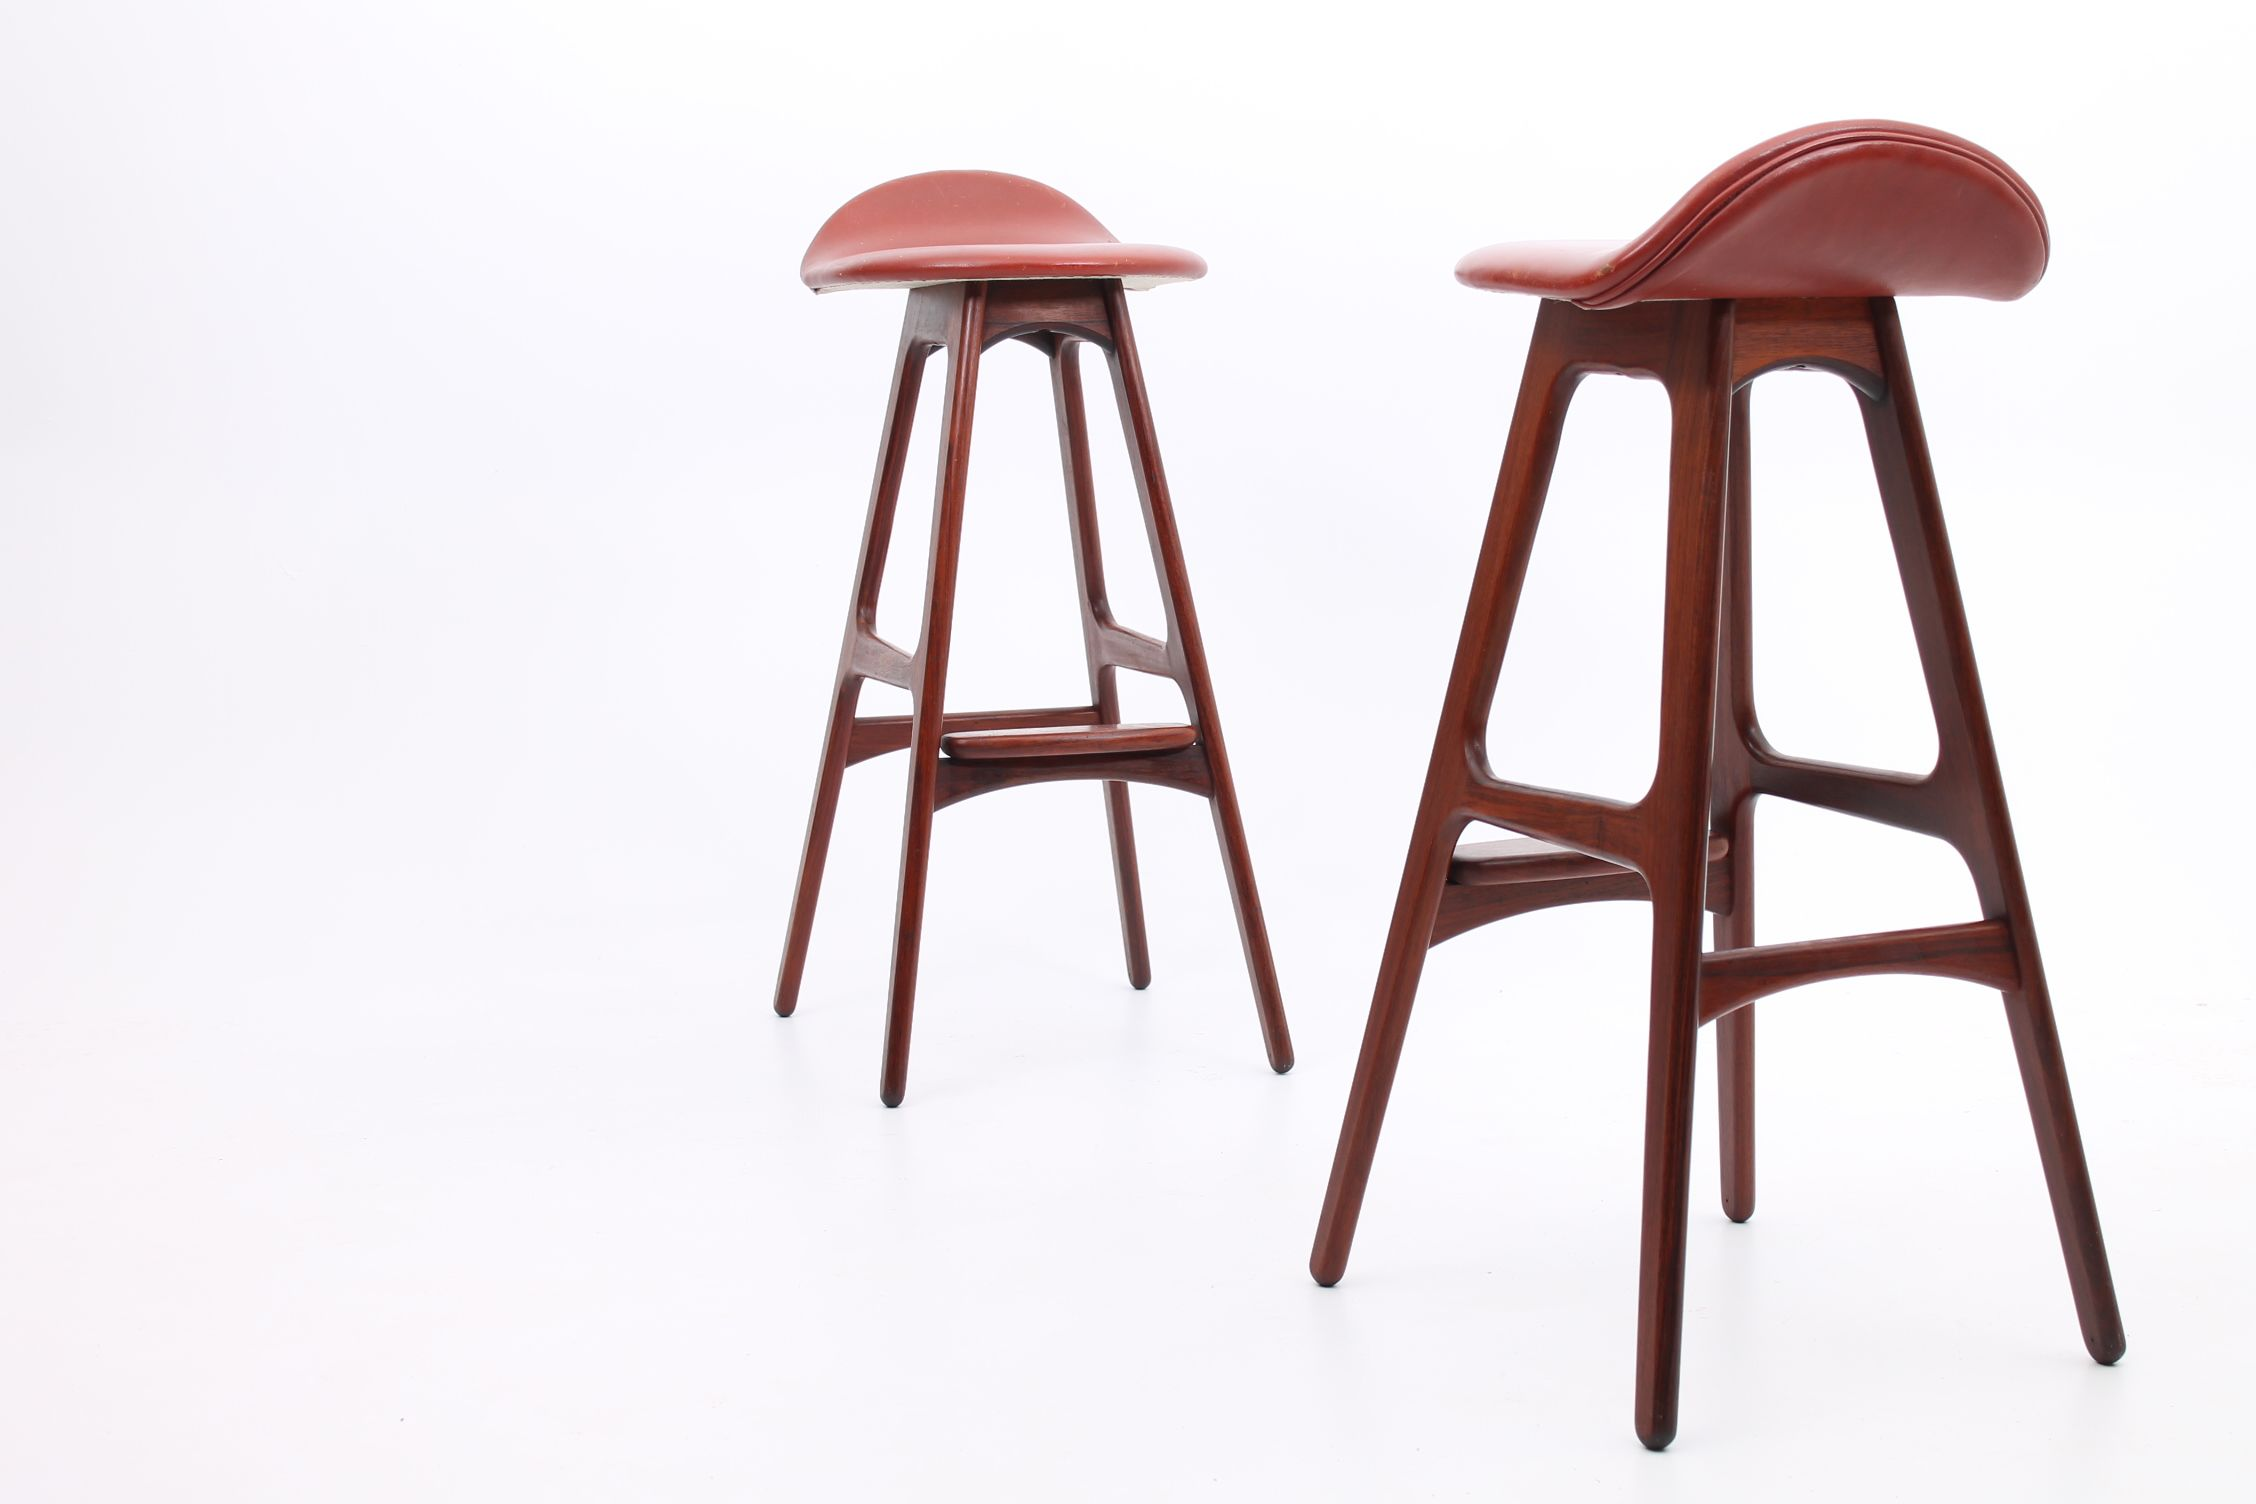 Pair Of Barstools Model Od61 In Rosewood And Original Red Leather Designed By Erik Buch And Manufactured In 1965 An Bar Stools Stool Danish Furniture Design